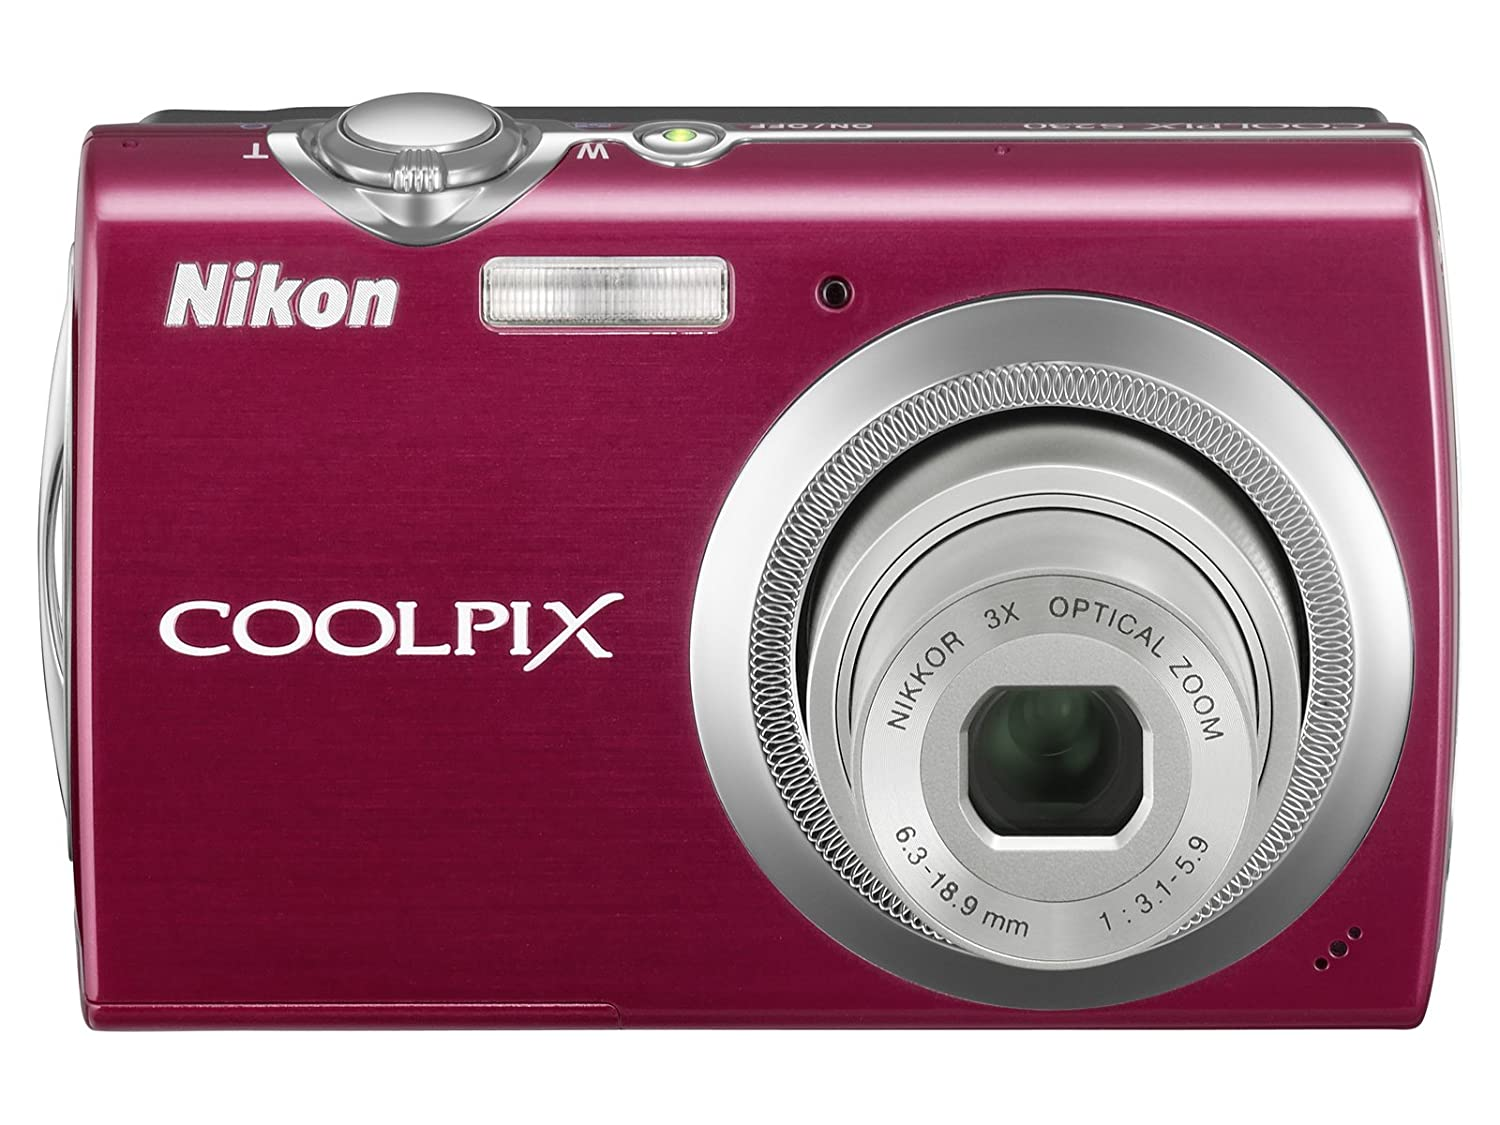 coolpix s230 のサムネイル画像